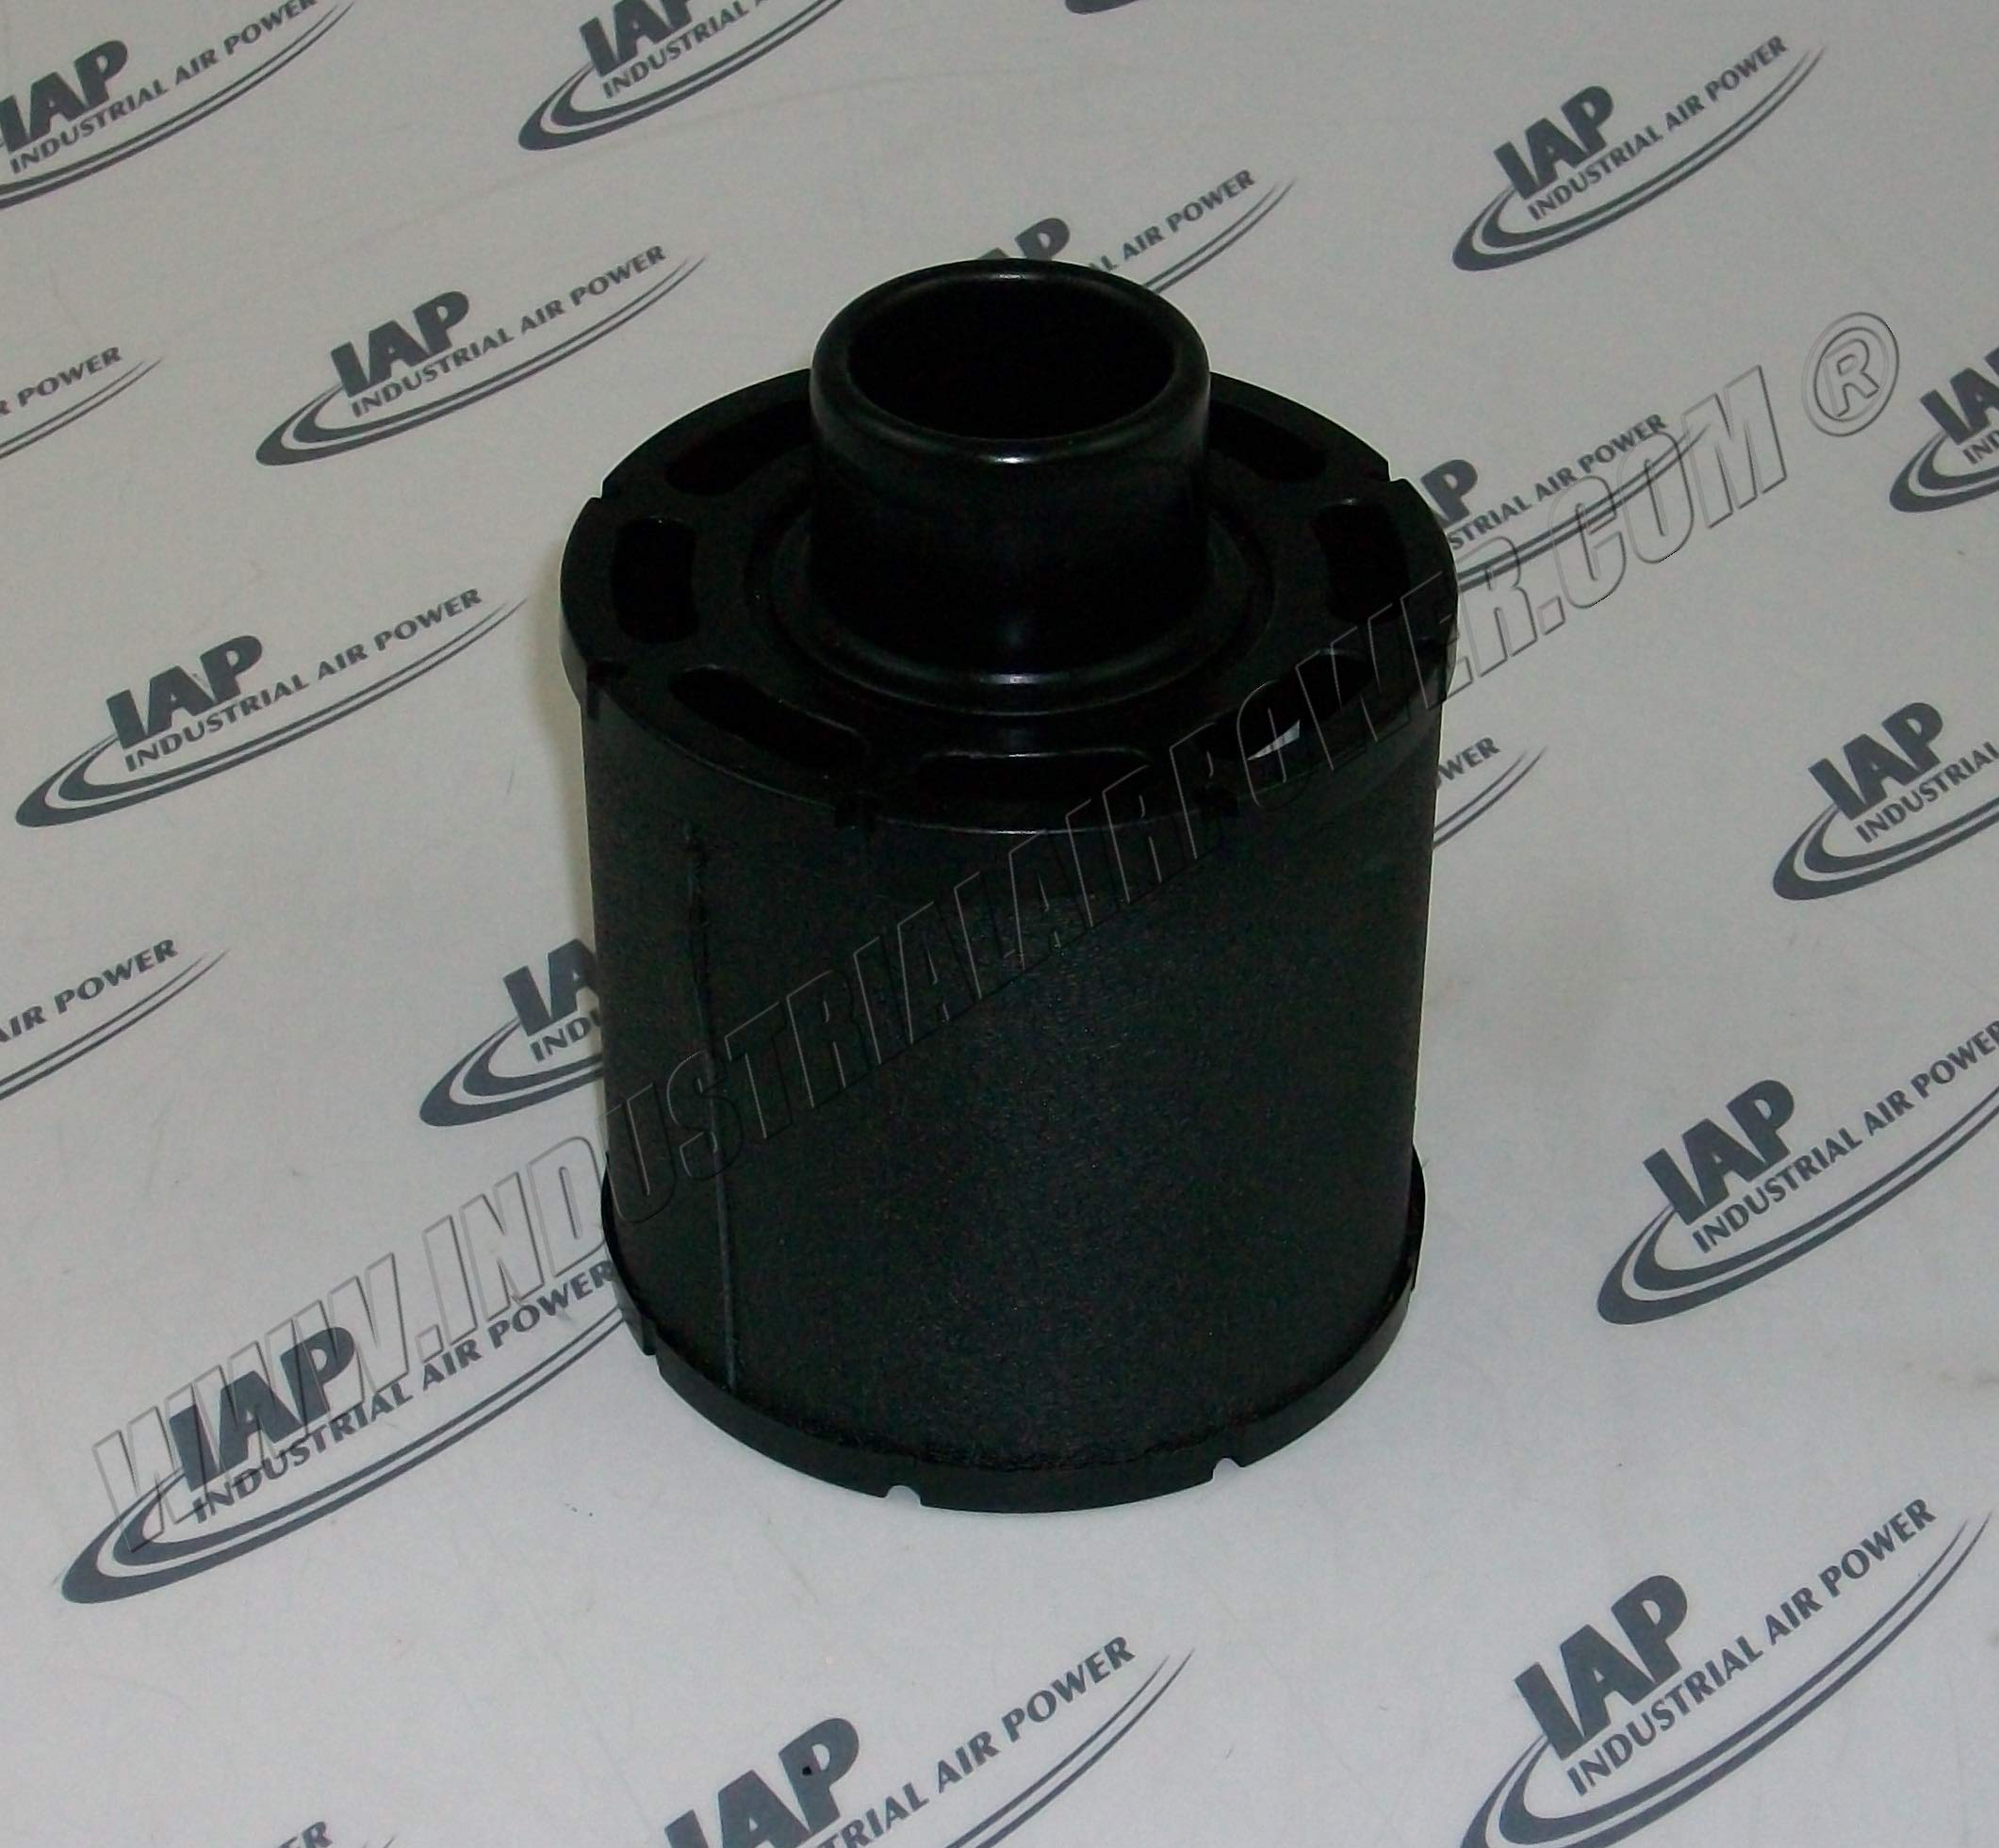 88290014-486 Air Filter Element Designed for use with SULLAIR Compressors by Industrial Air Power